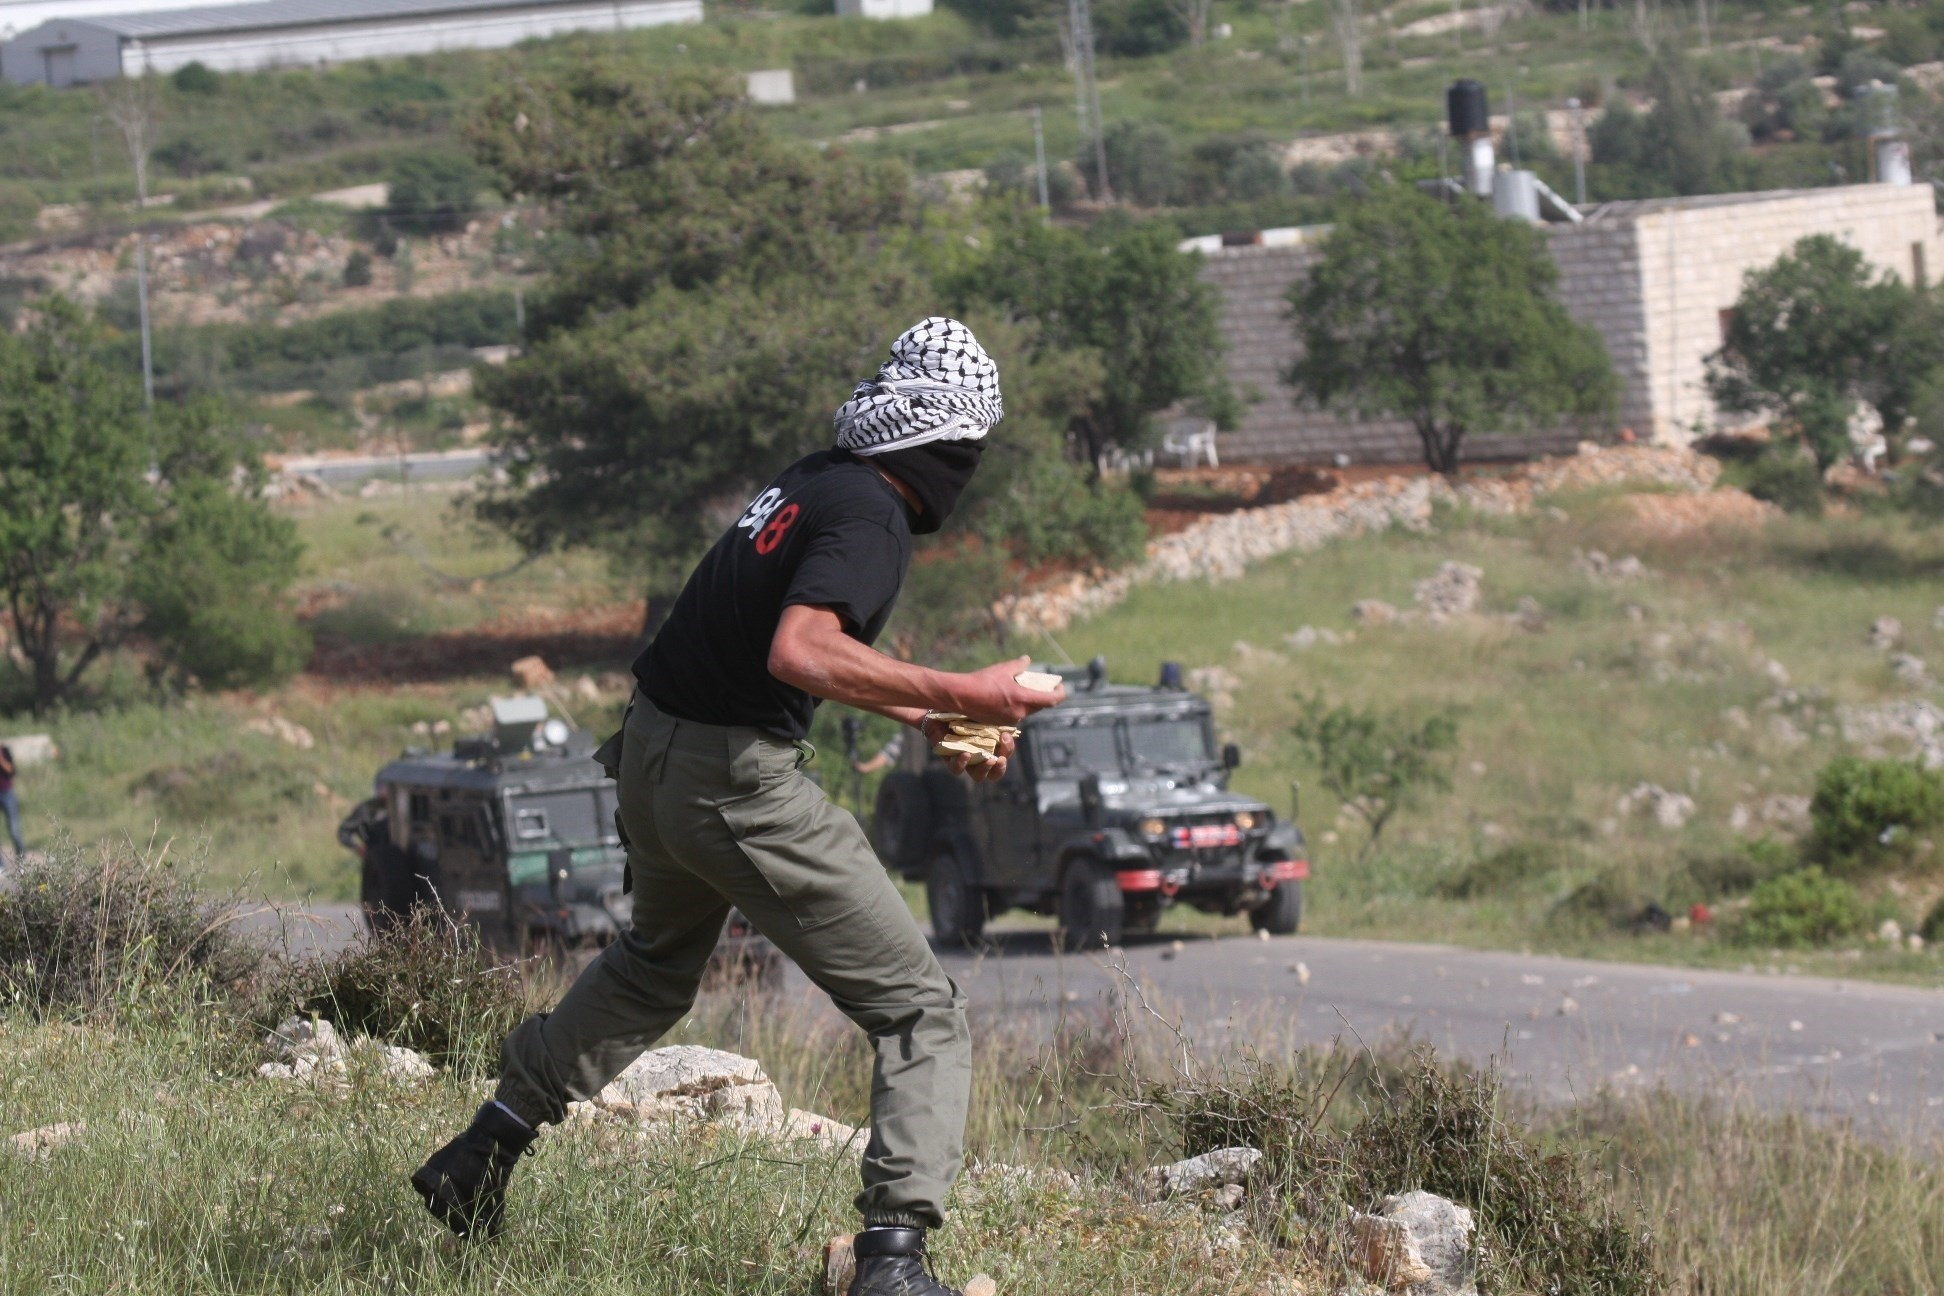 More than 320 Palestinians were hurt in confrontations with Israeli occupation forces